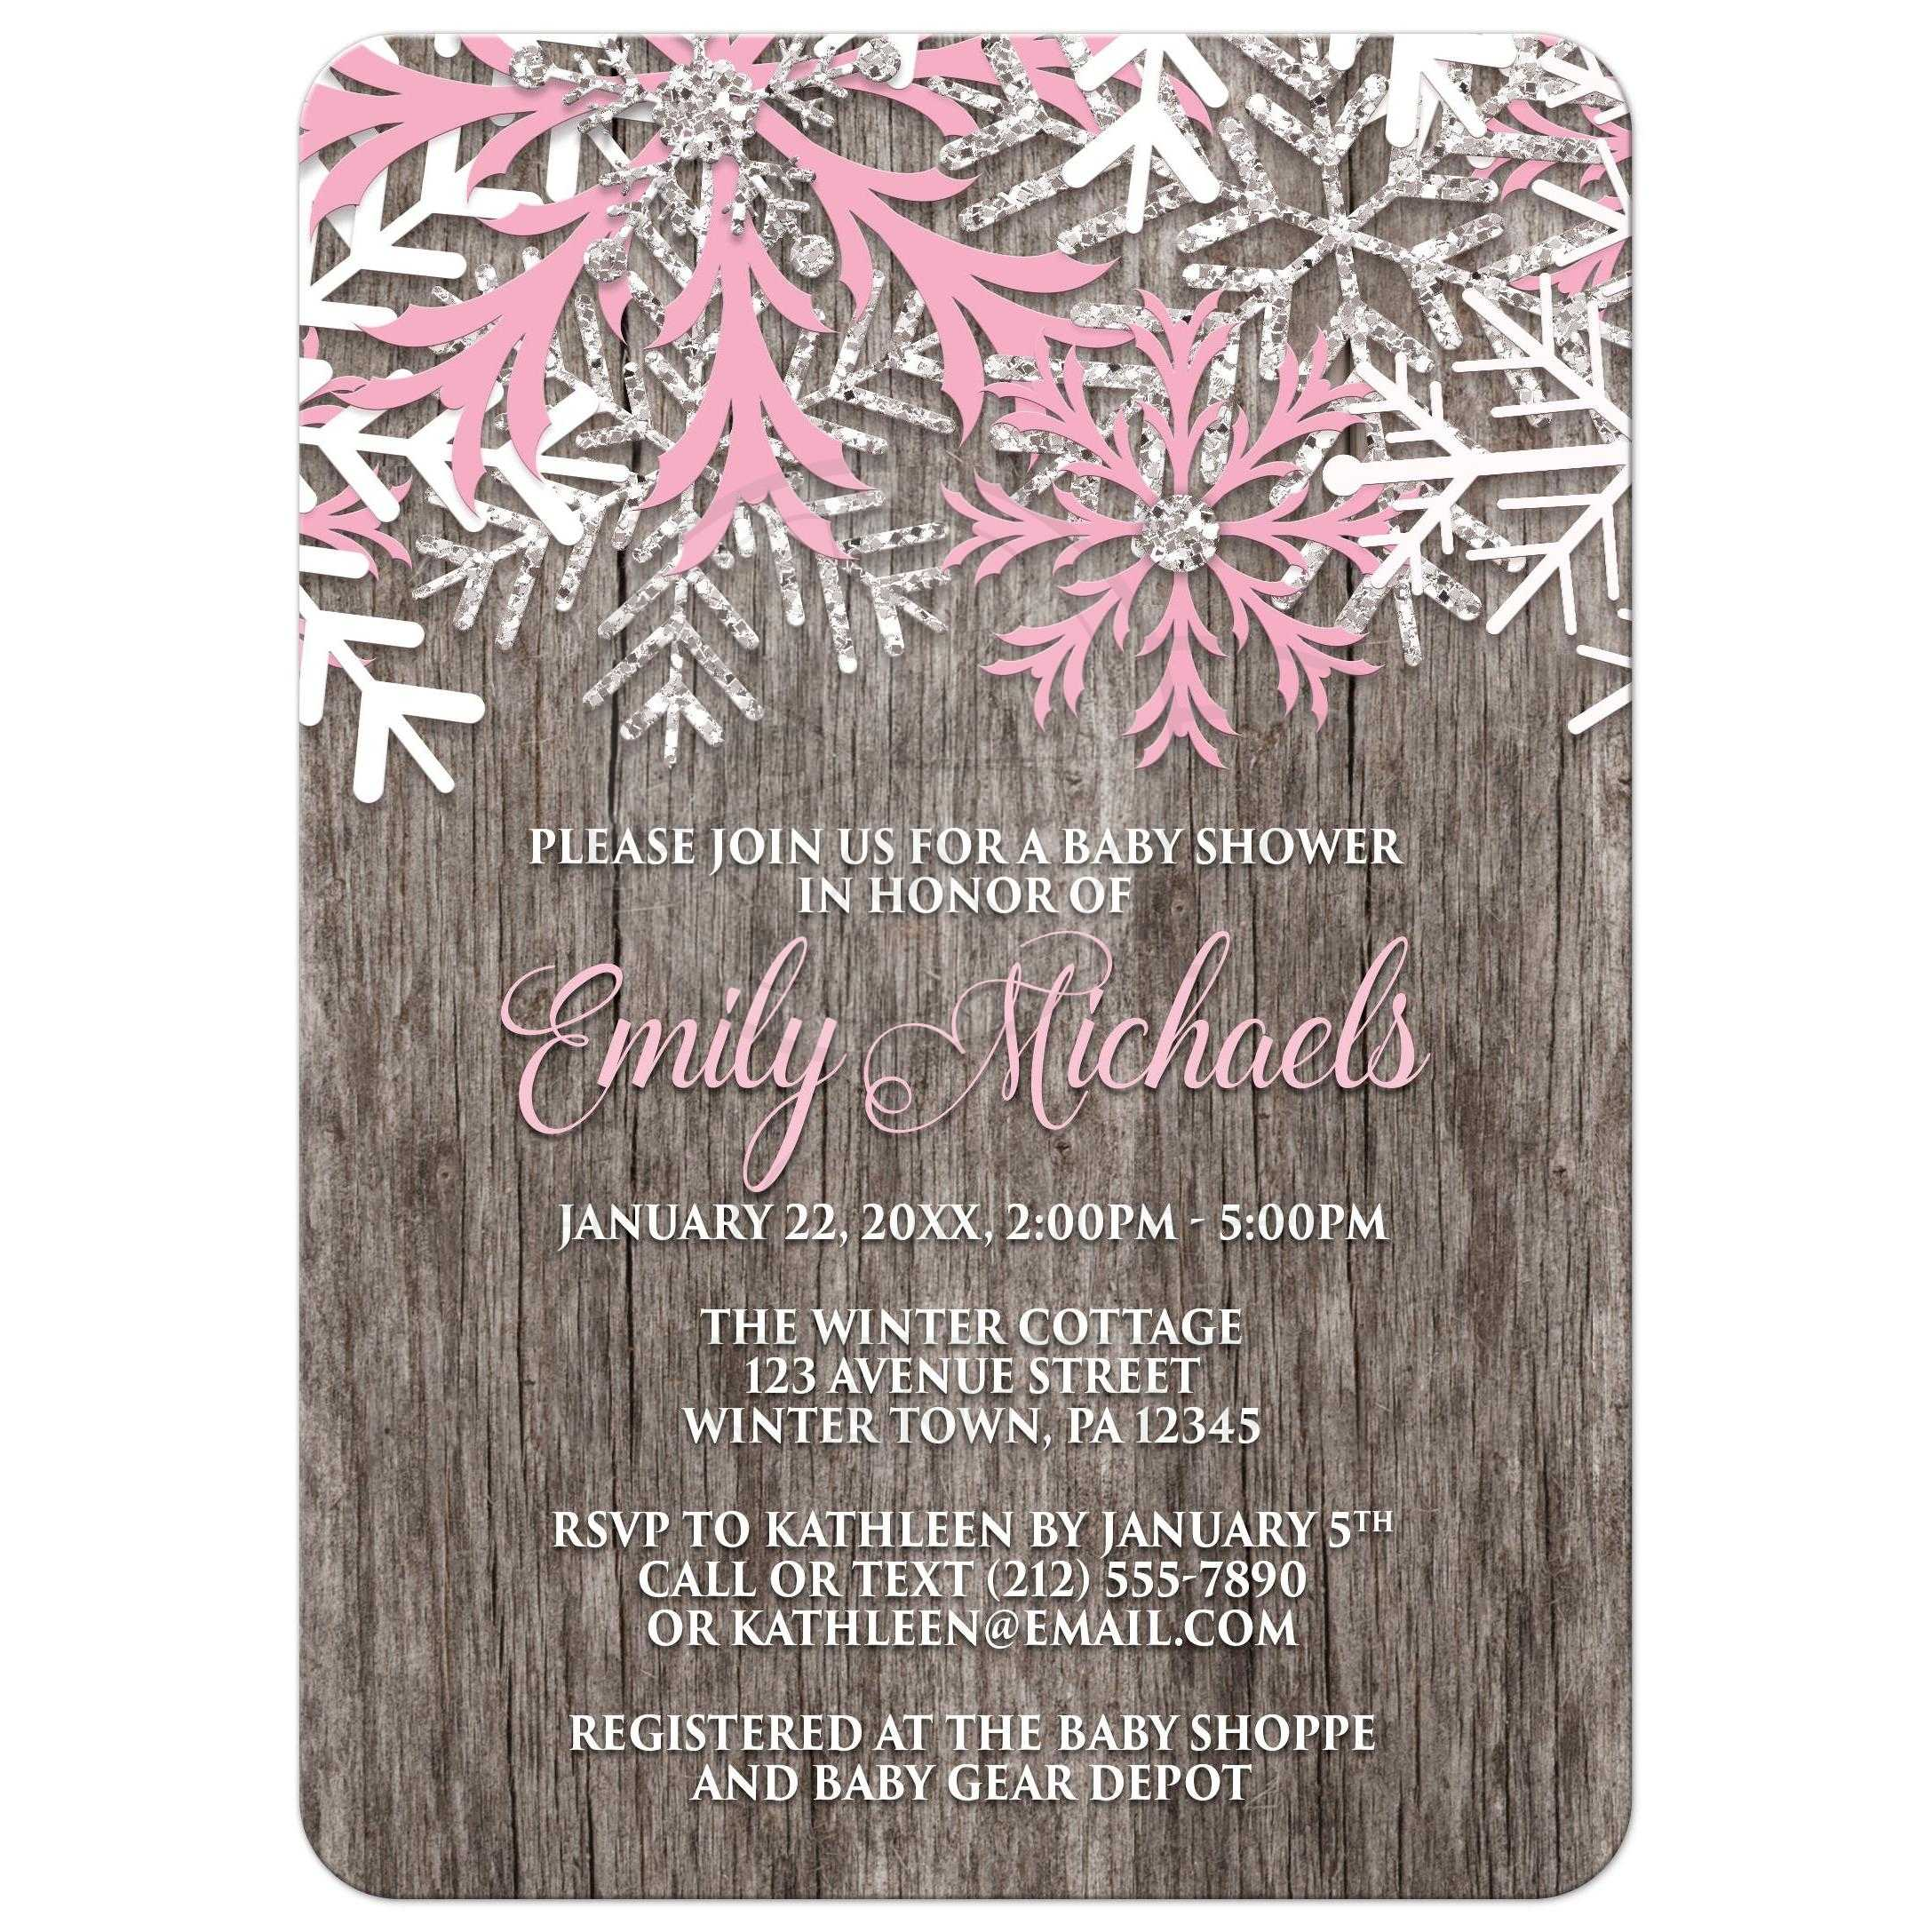 Shower Invitations - Pink Snowflake Rustic Winter Wood